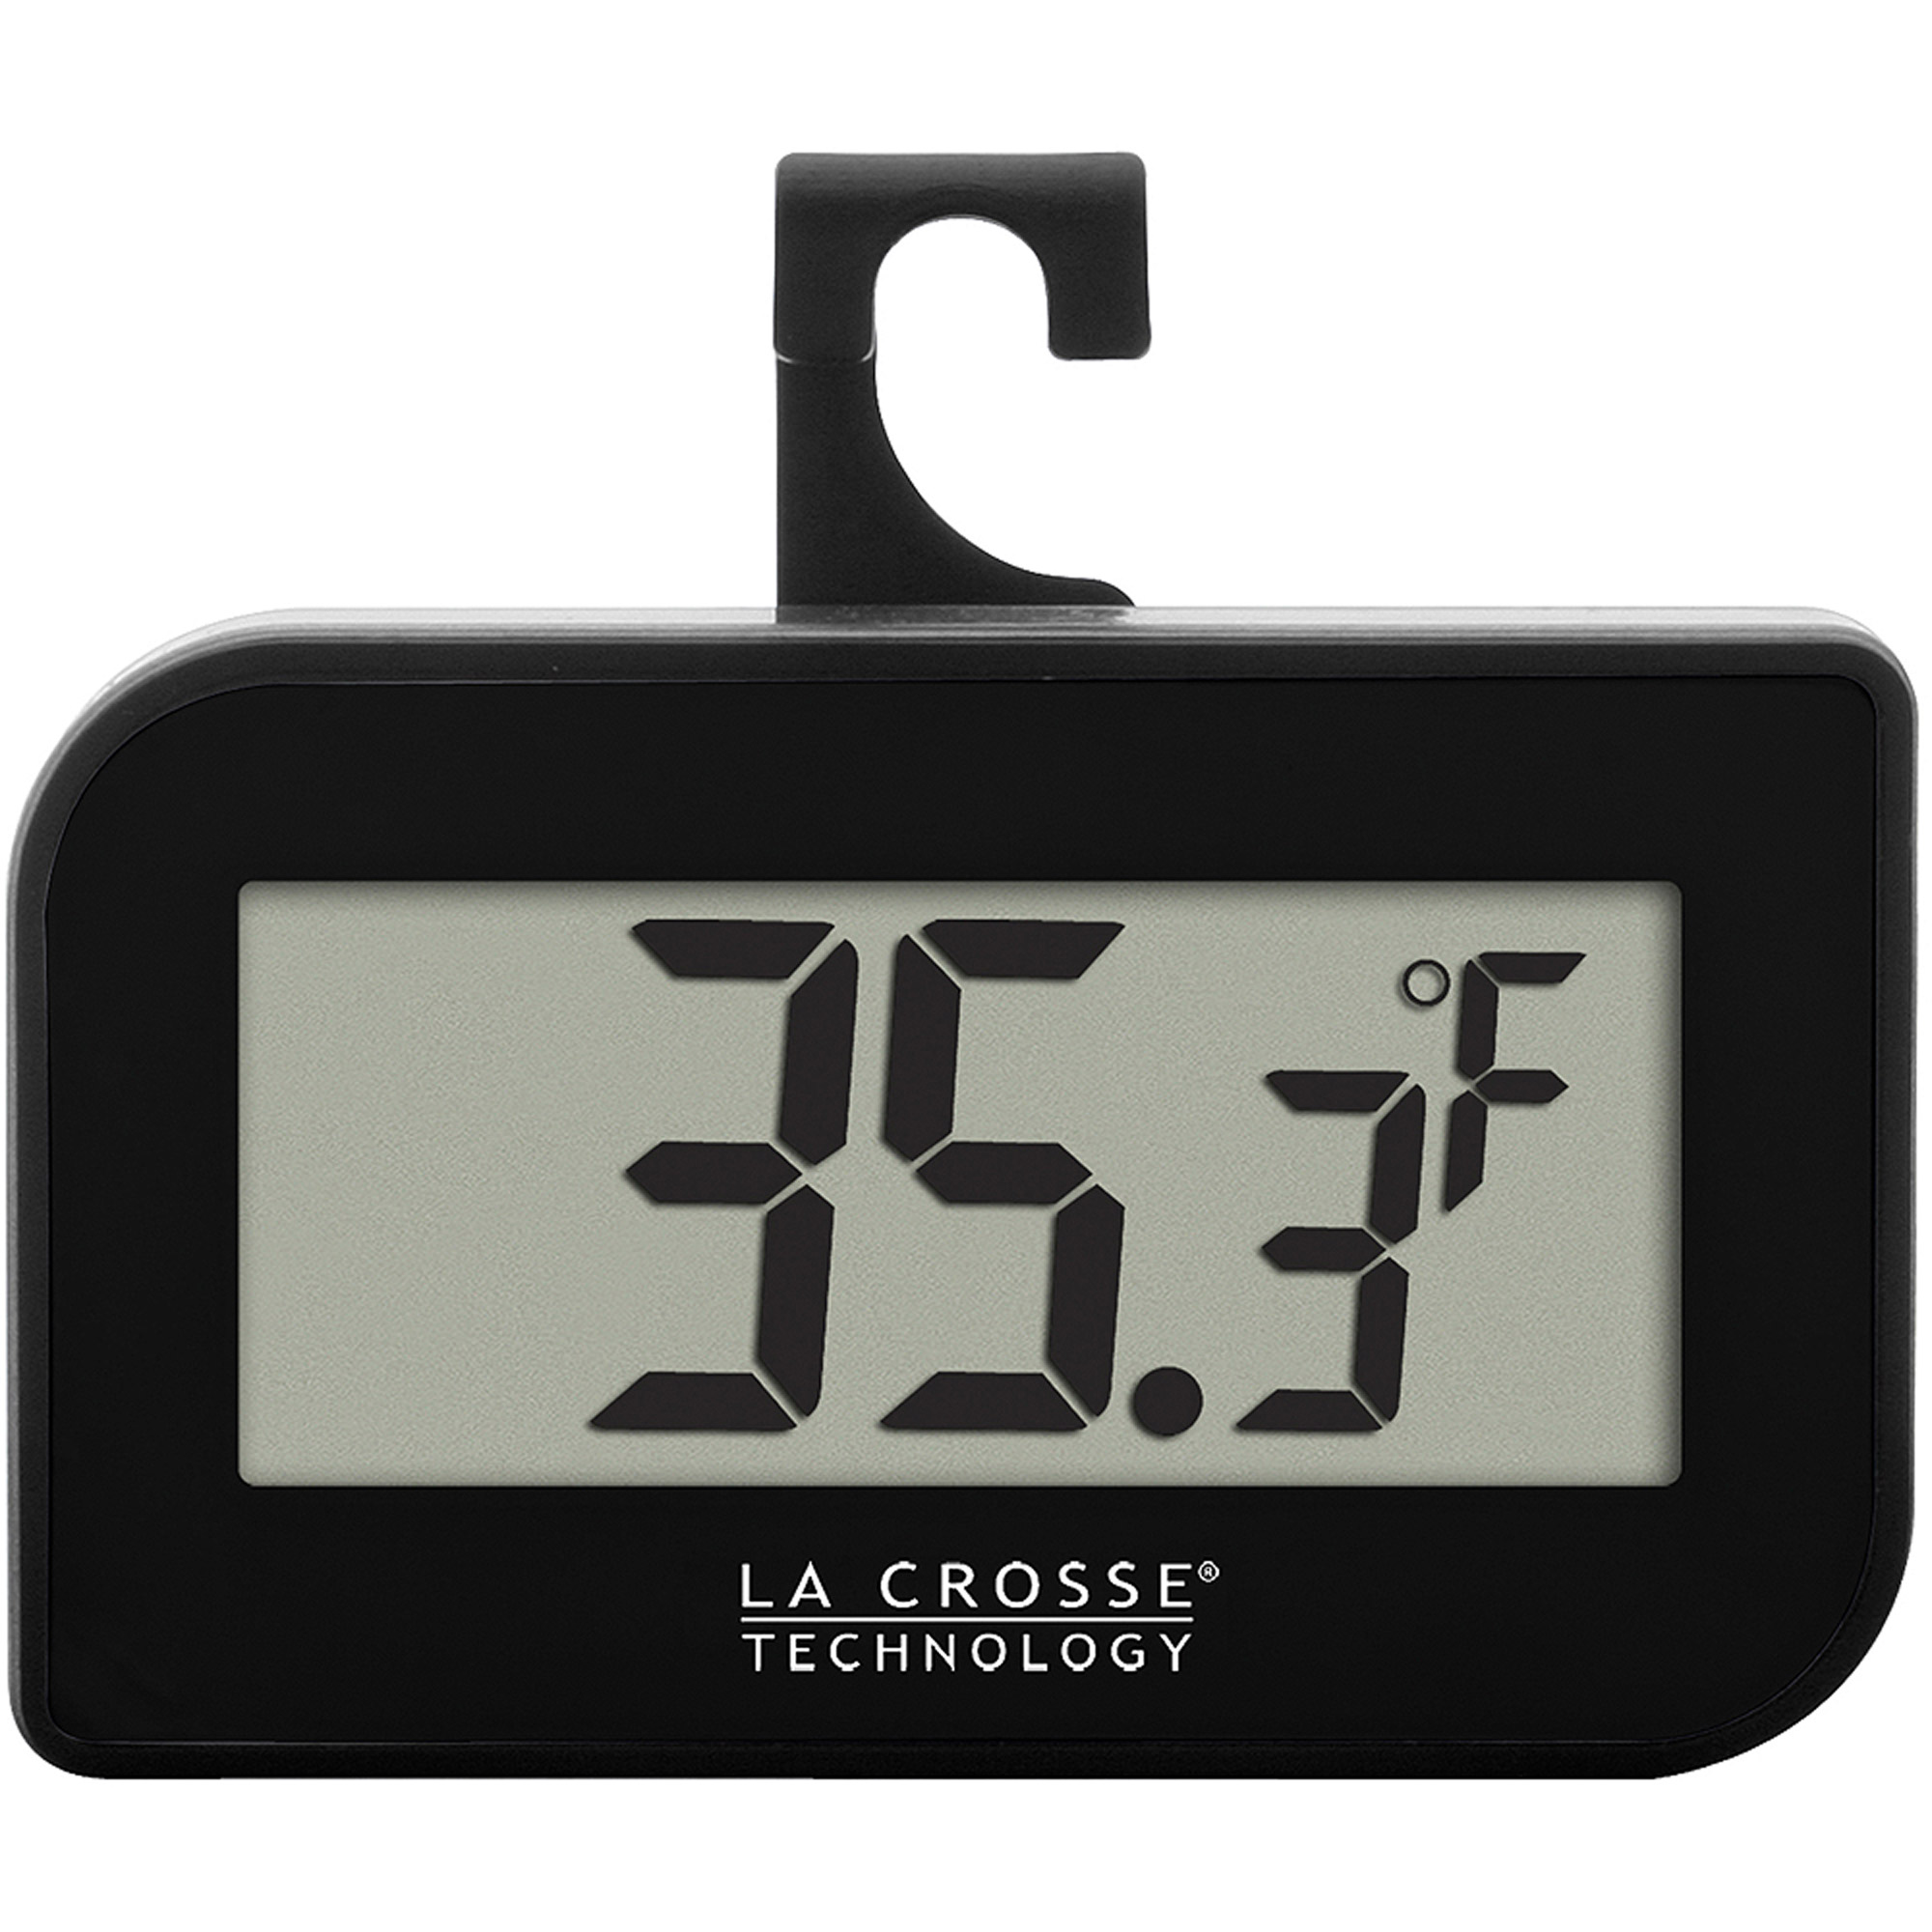 La Crosse Technology 314-152-B Digital Refrigerator-Freezer Thermometer with Hook, Black